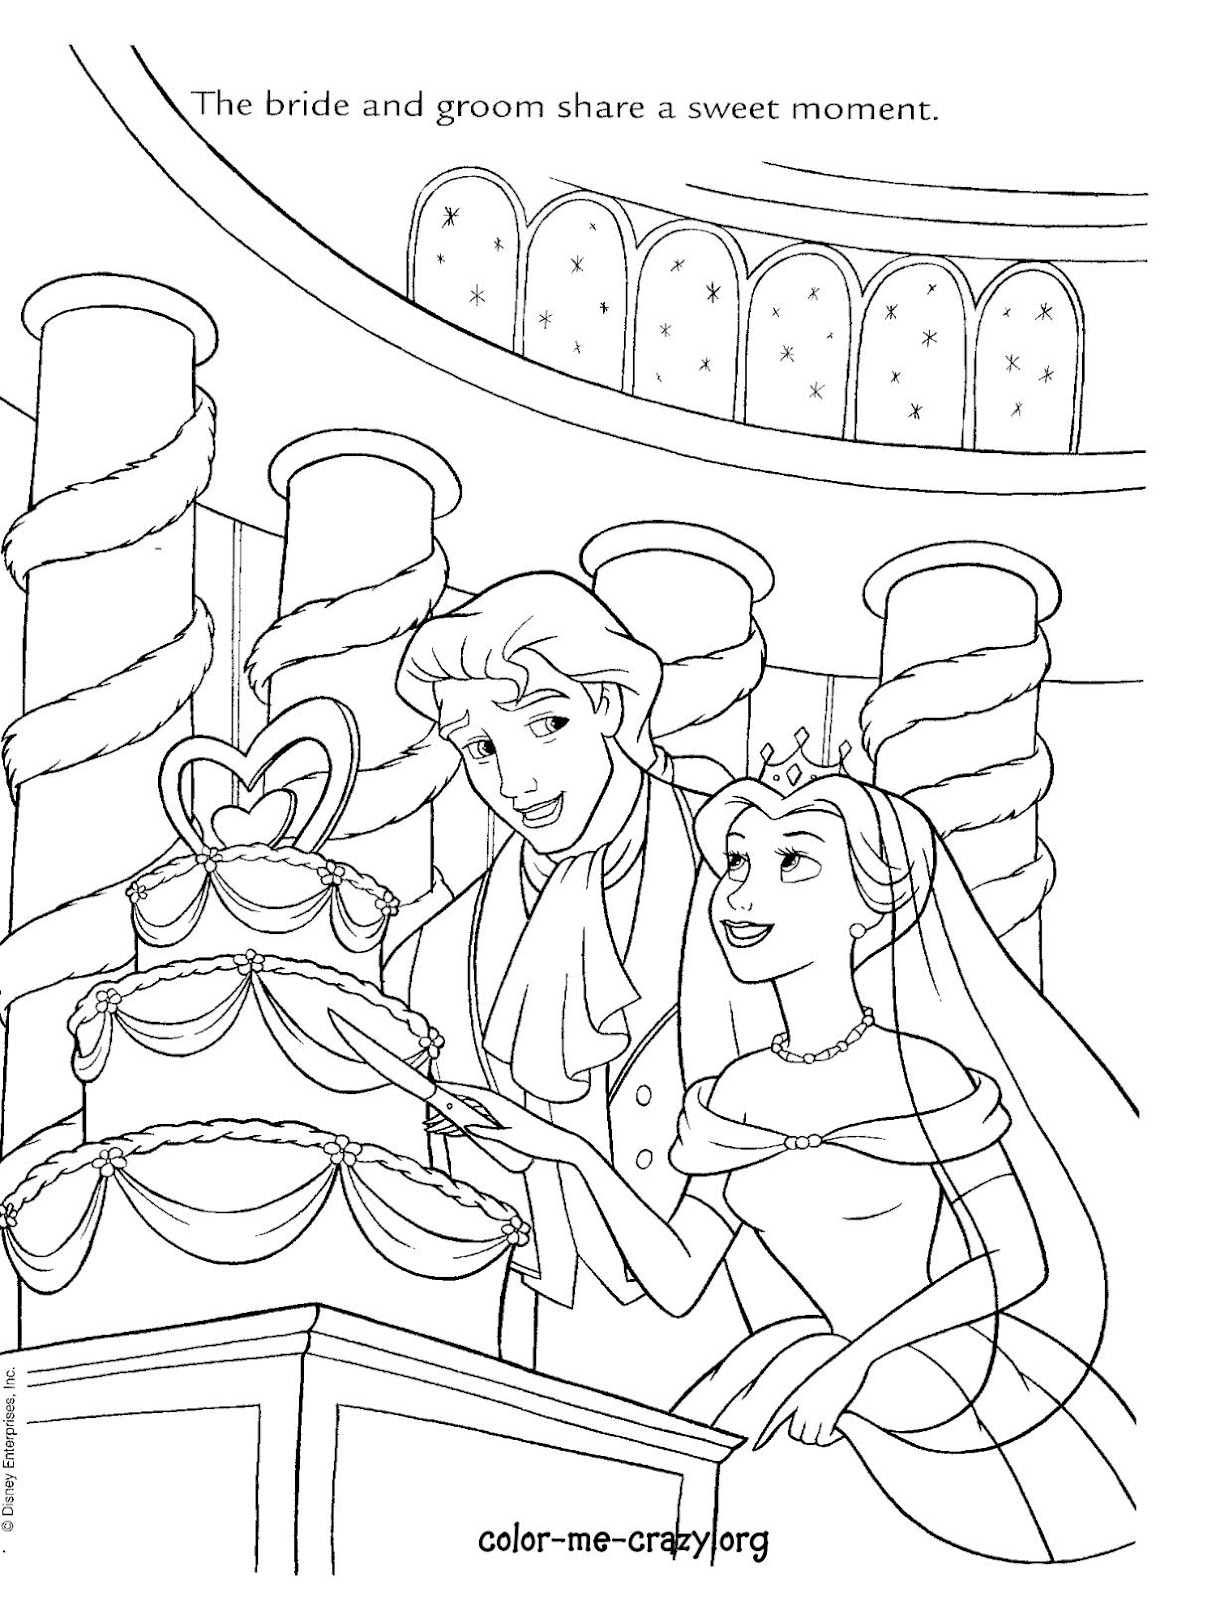 disney wedding coloring pages - photo#4